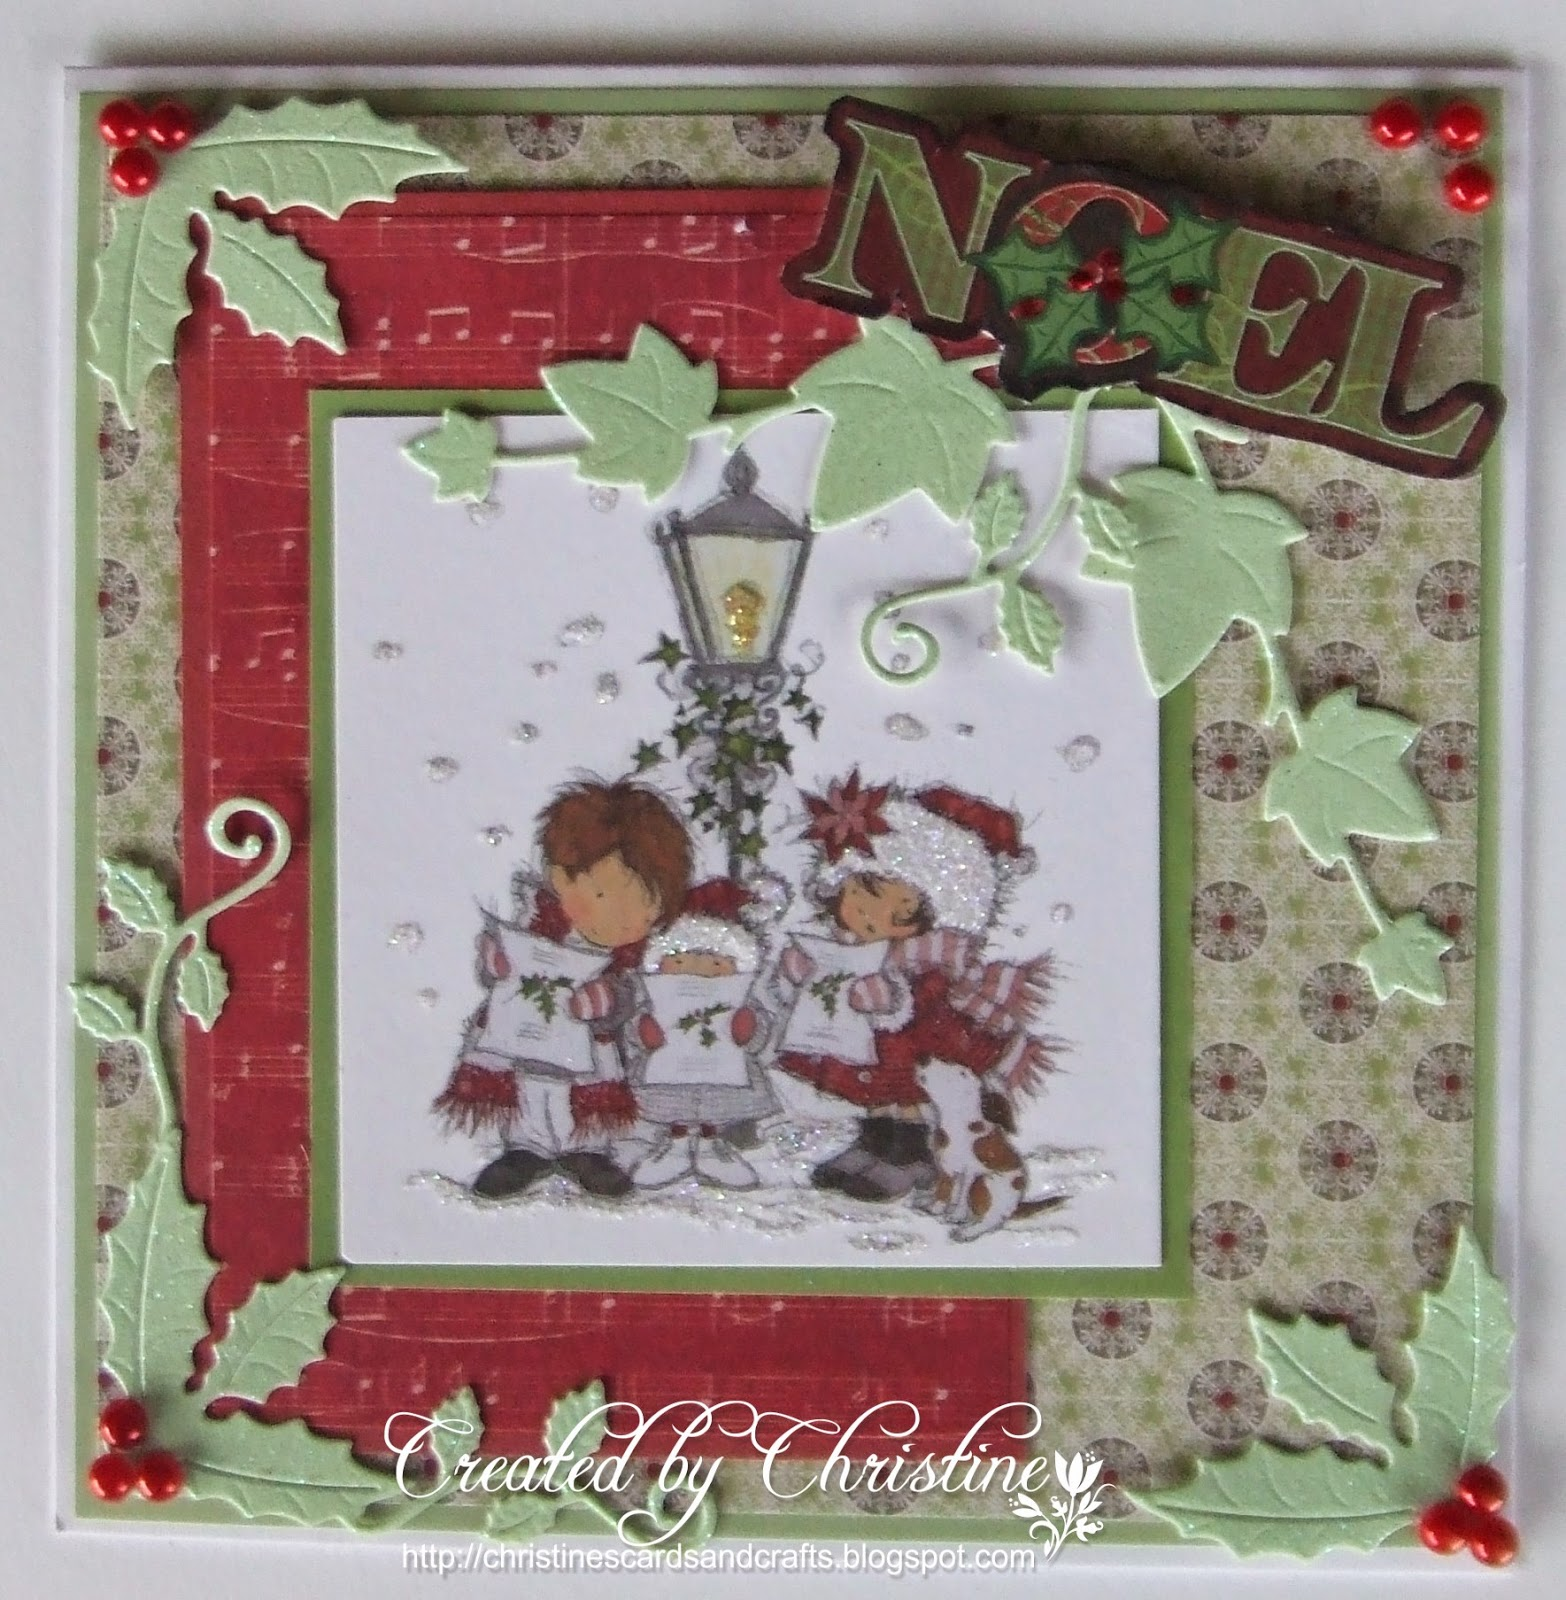 Christine's Cards And Crafts: Christmas Card Club # 21